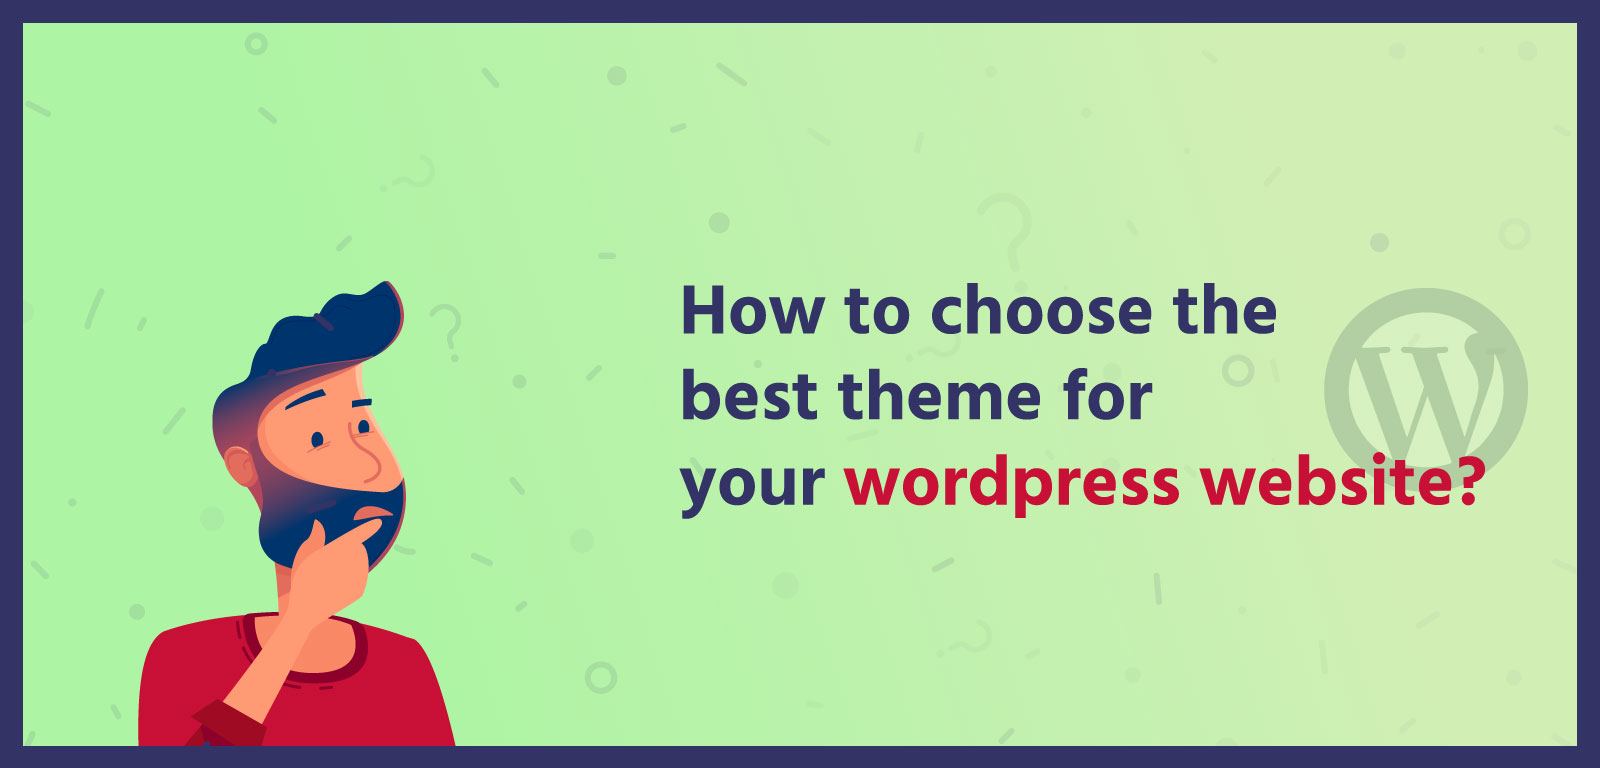 How to choose the best theme for your wordpress website?